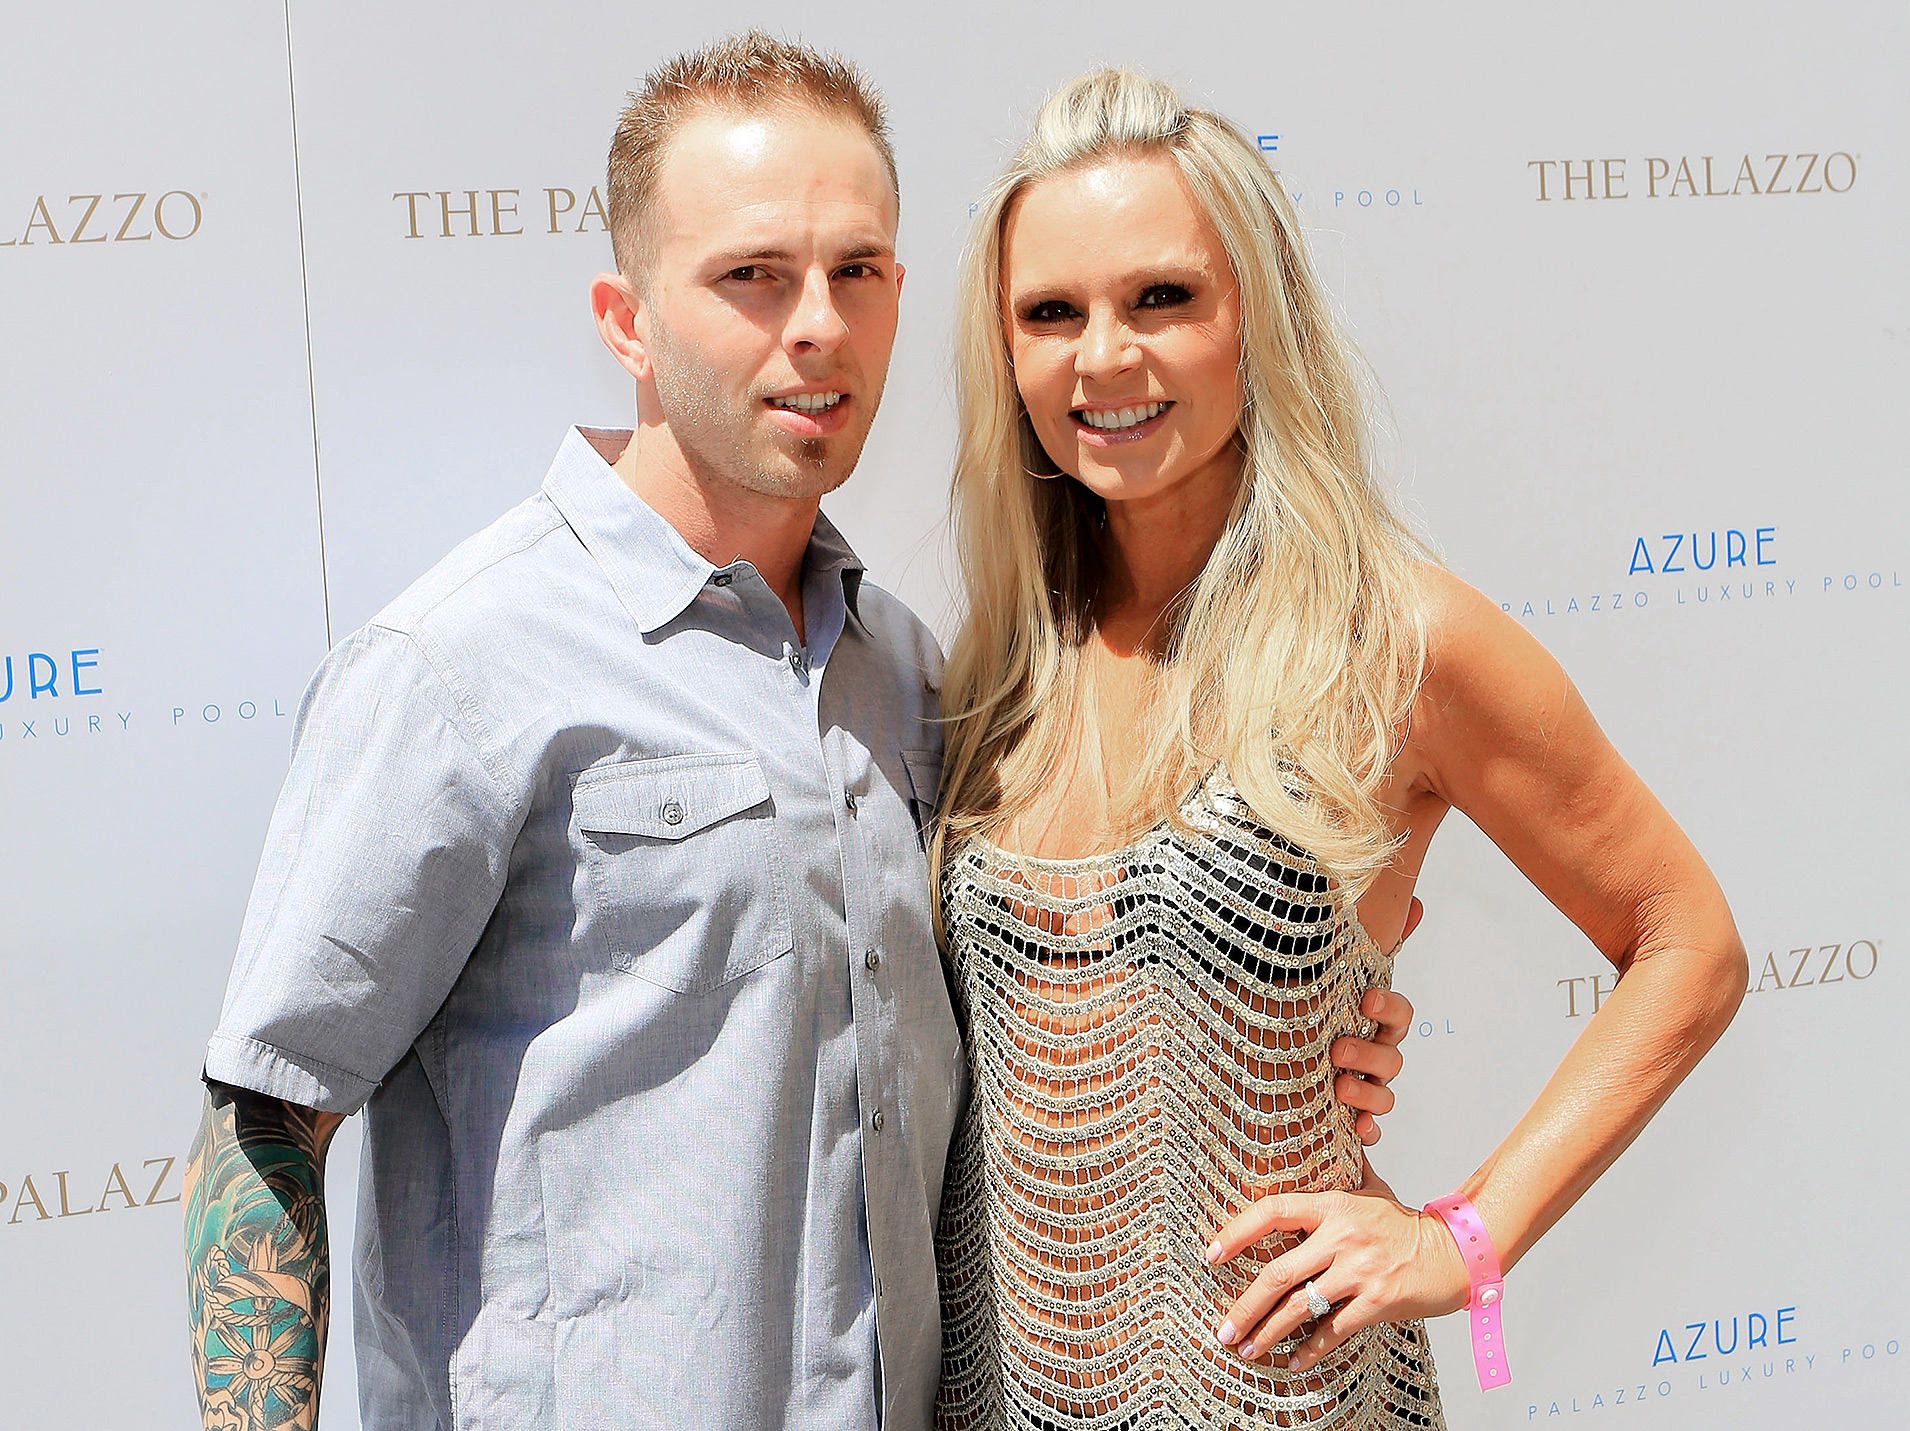 Tamra Barney (R) and son Ryan Vieth arrive at Tamra Barney's bachelorette party at the Azure pool at The Palazzo Las Vegas